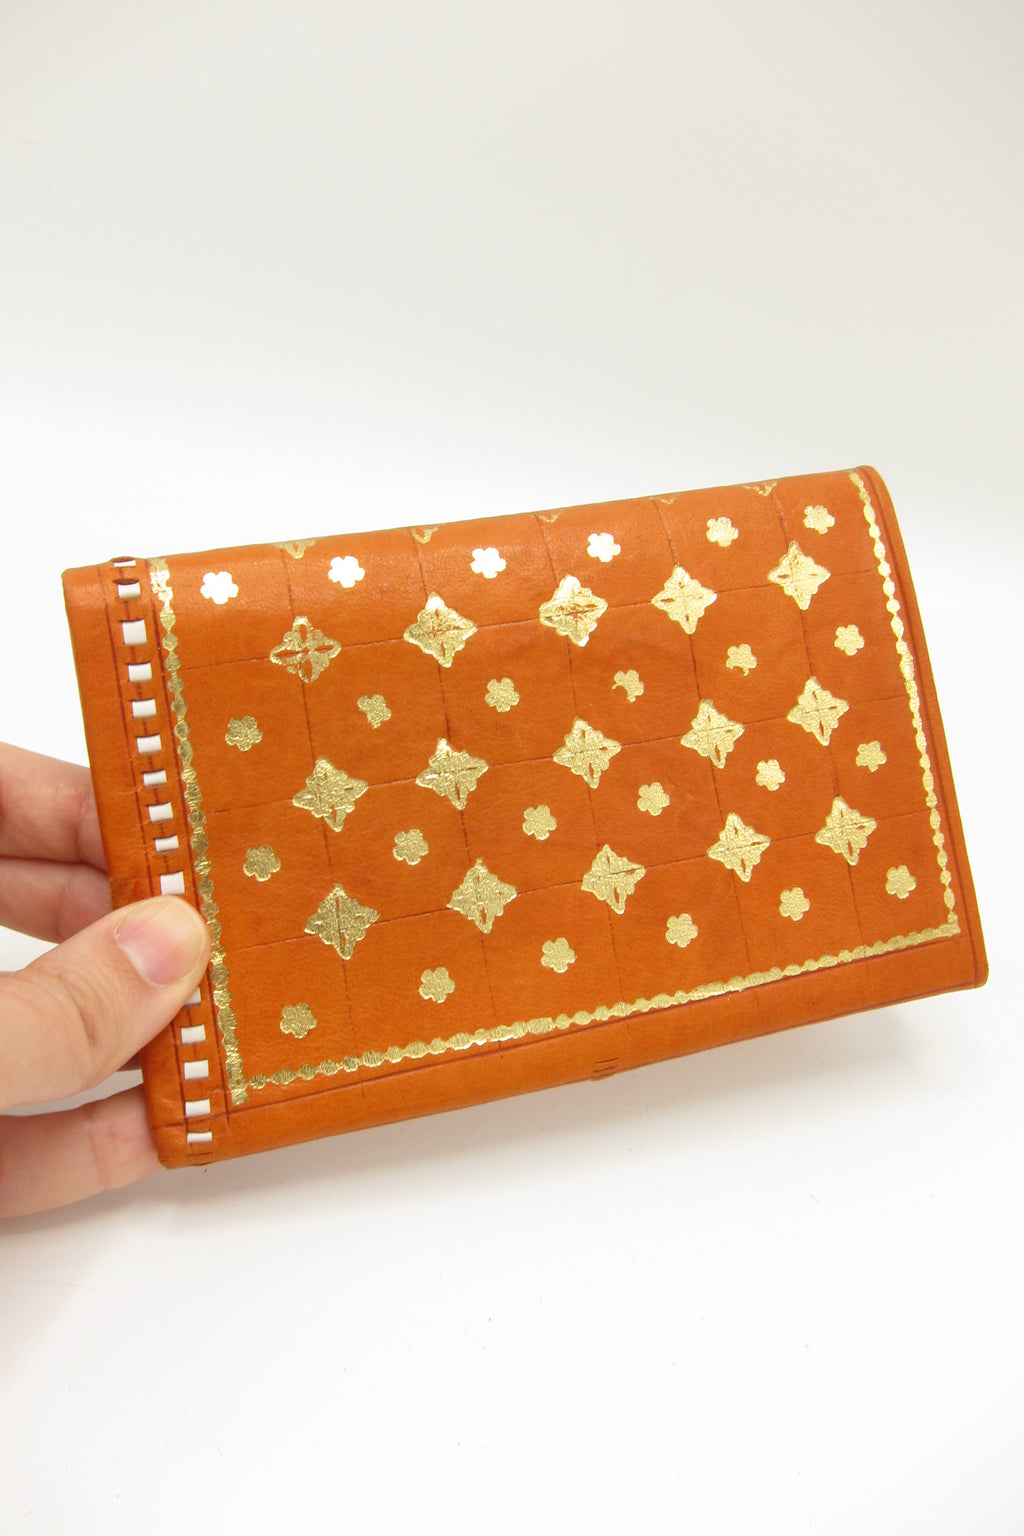 Copy of Vintage Florentine 22K Gold Accented Leather Wallet - Orange